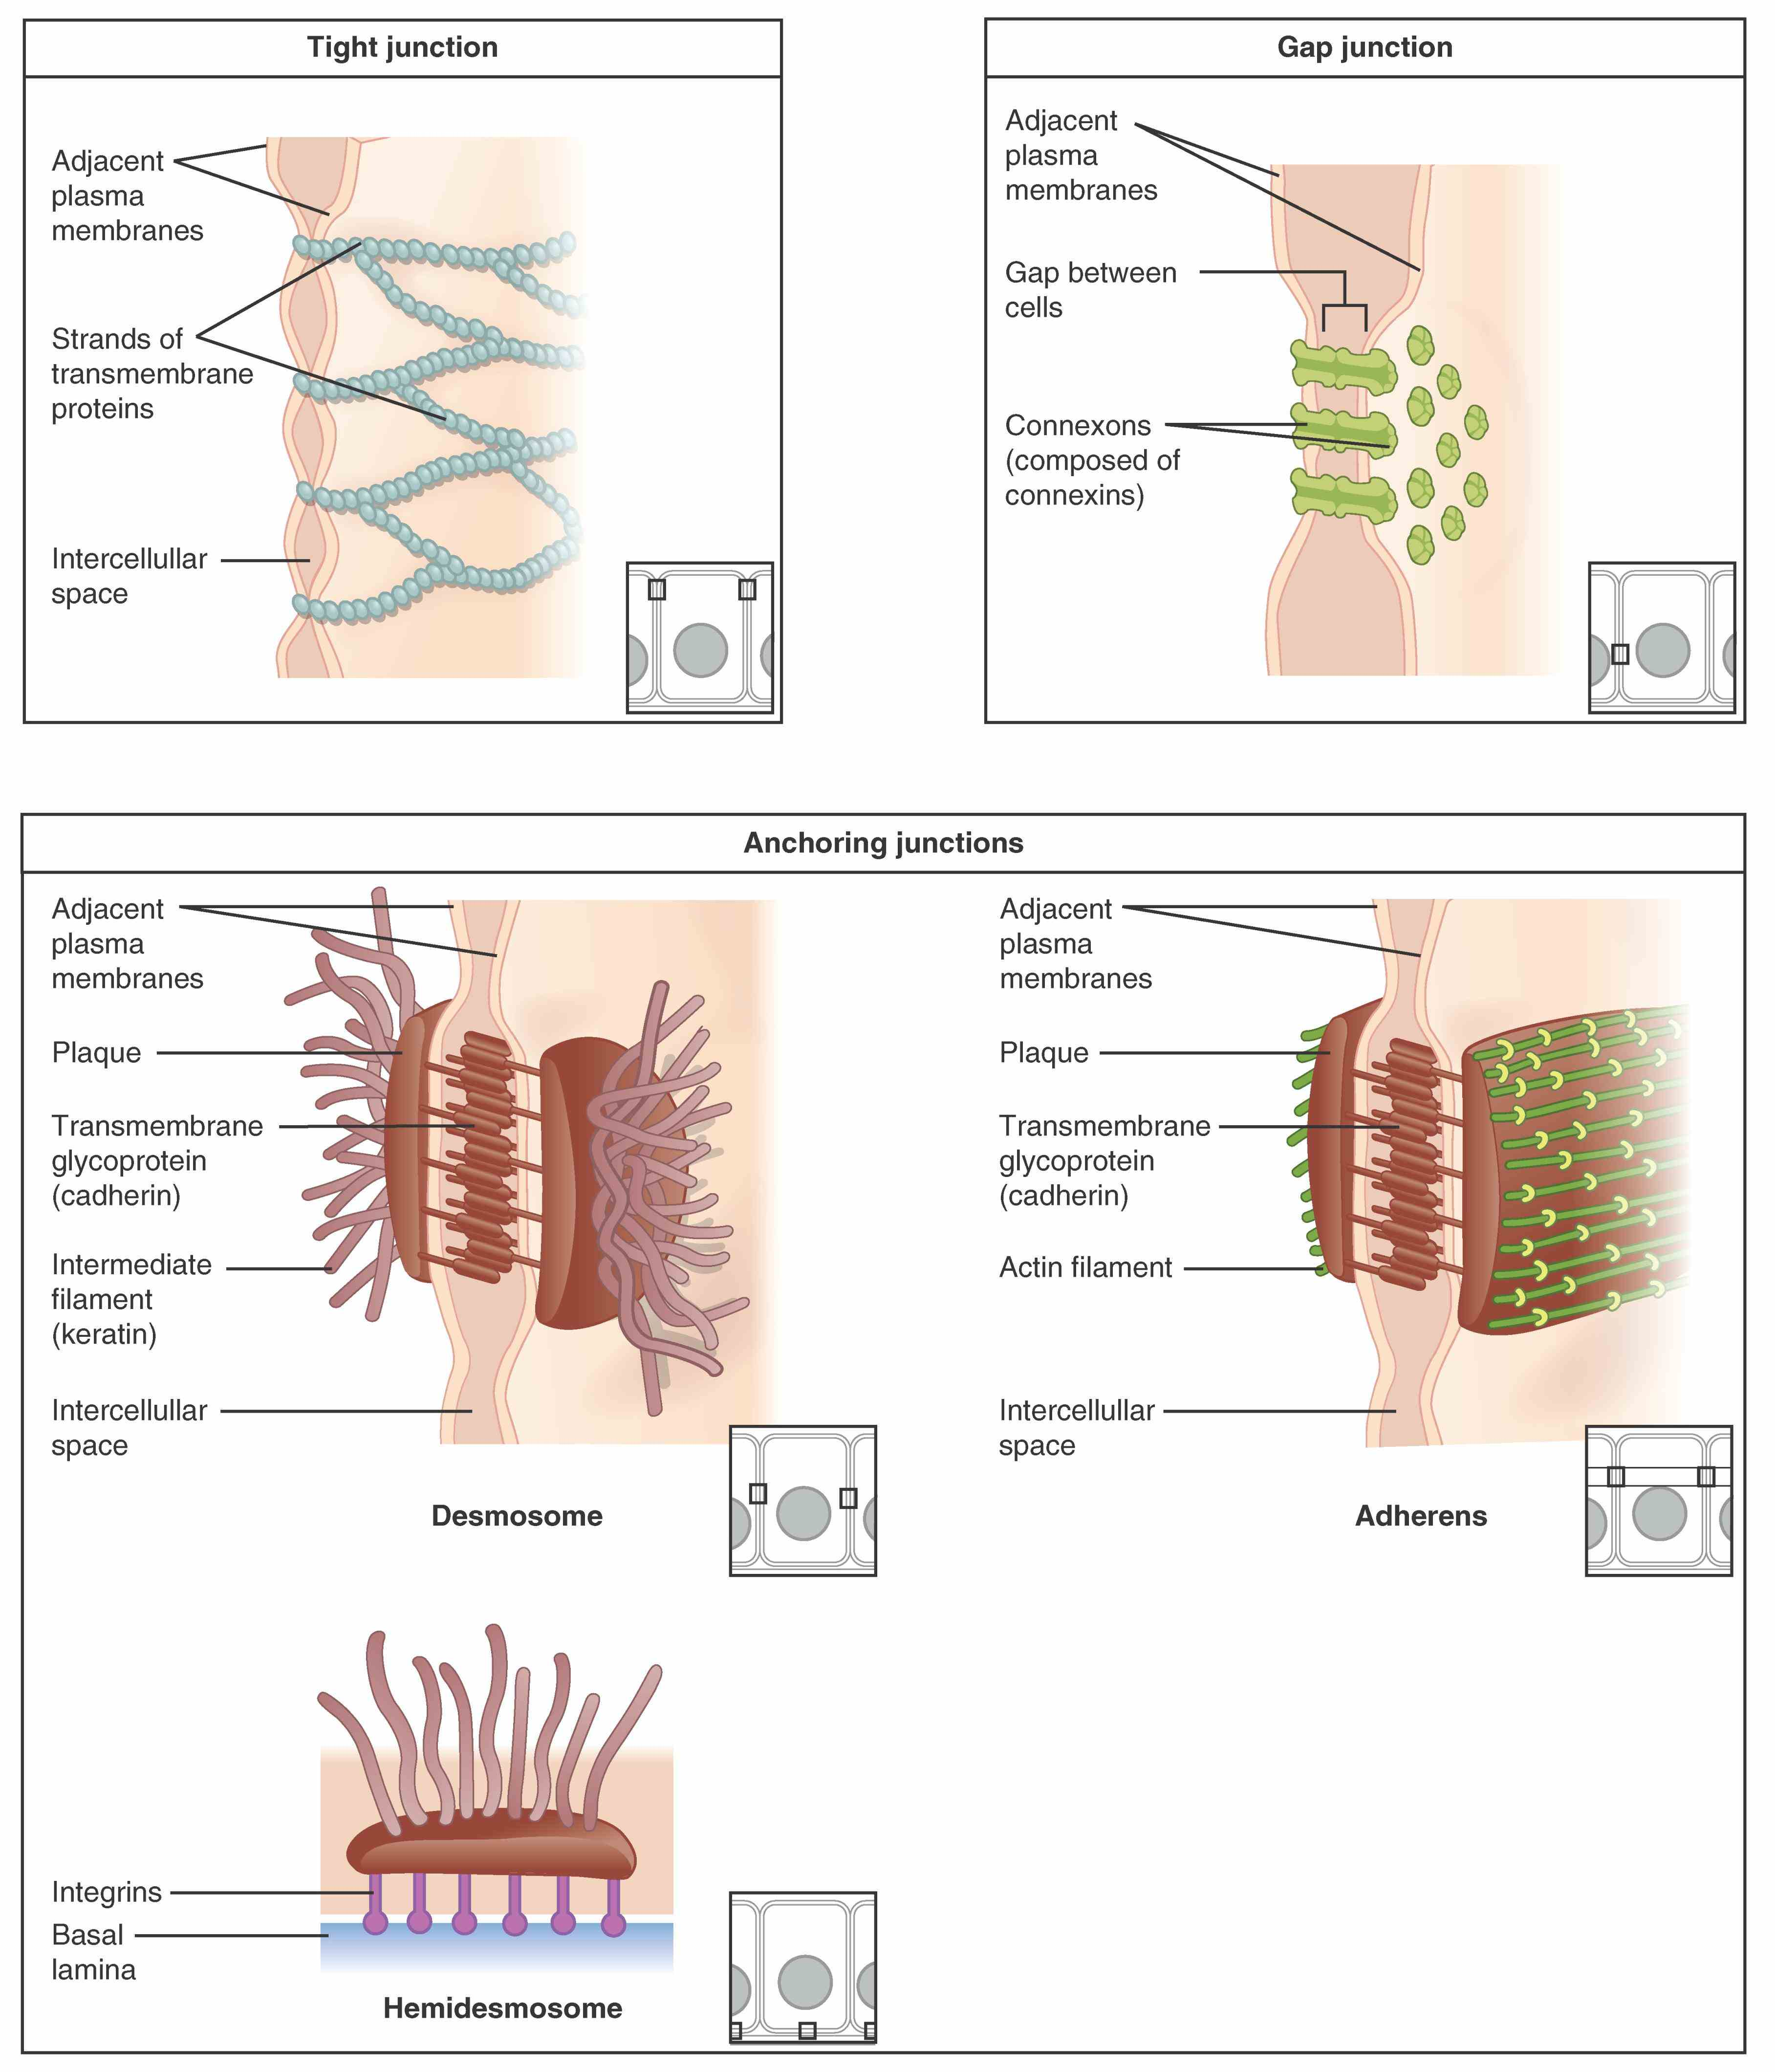 see pileipellis functions cells include secretion selective absorption protection transcellular  de Epithelial Tissue Structure And Function jun epithelial tissue